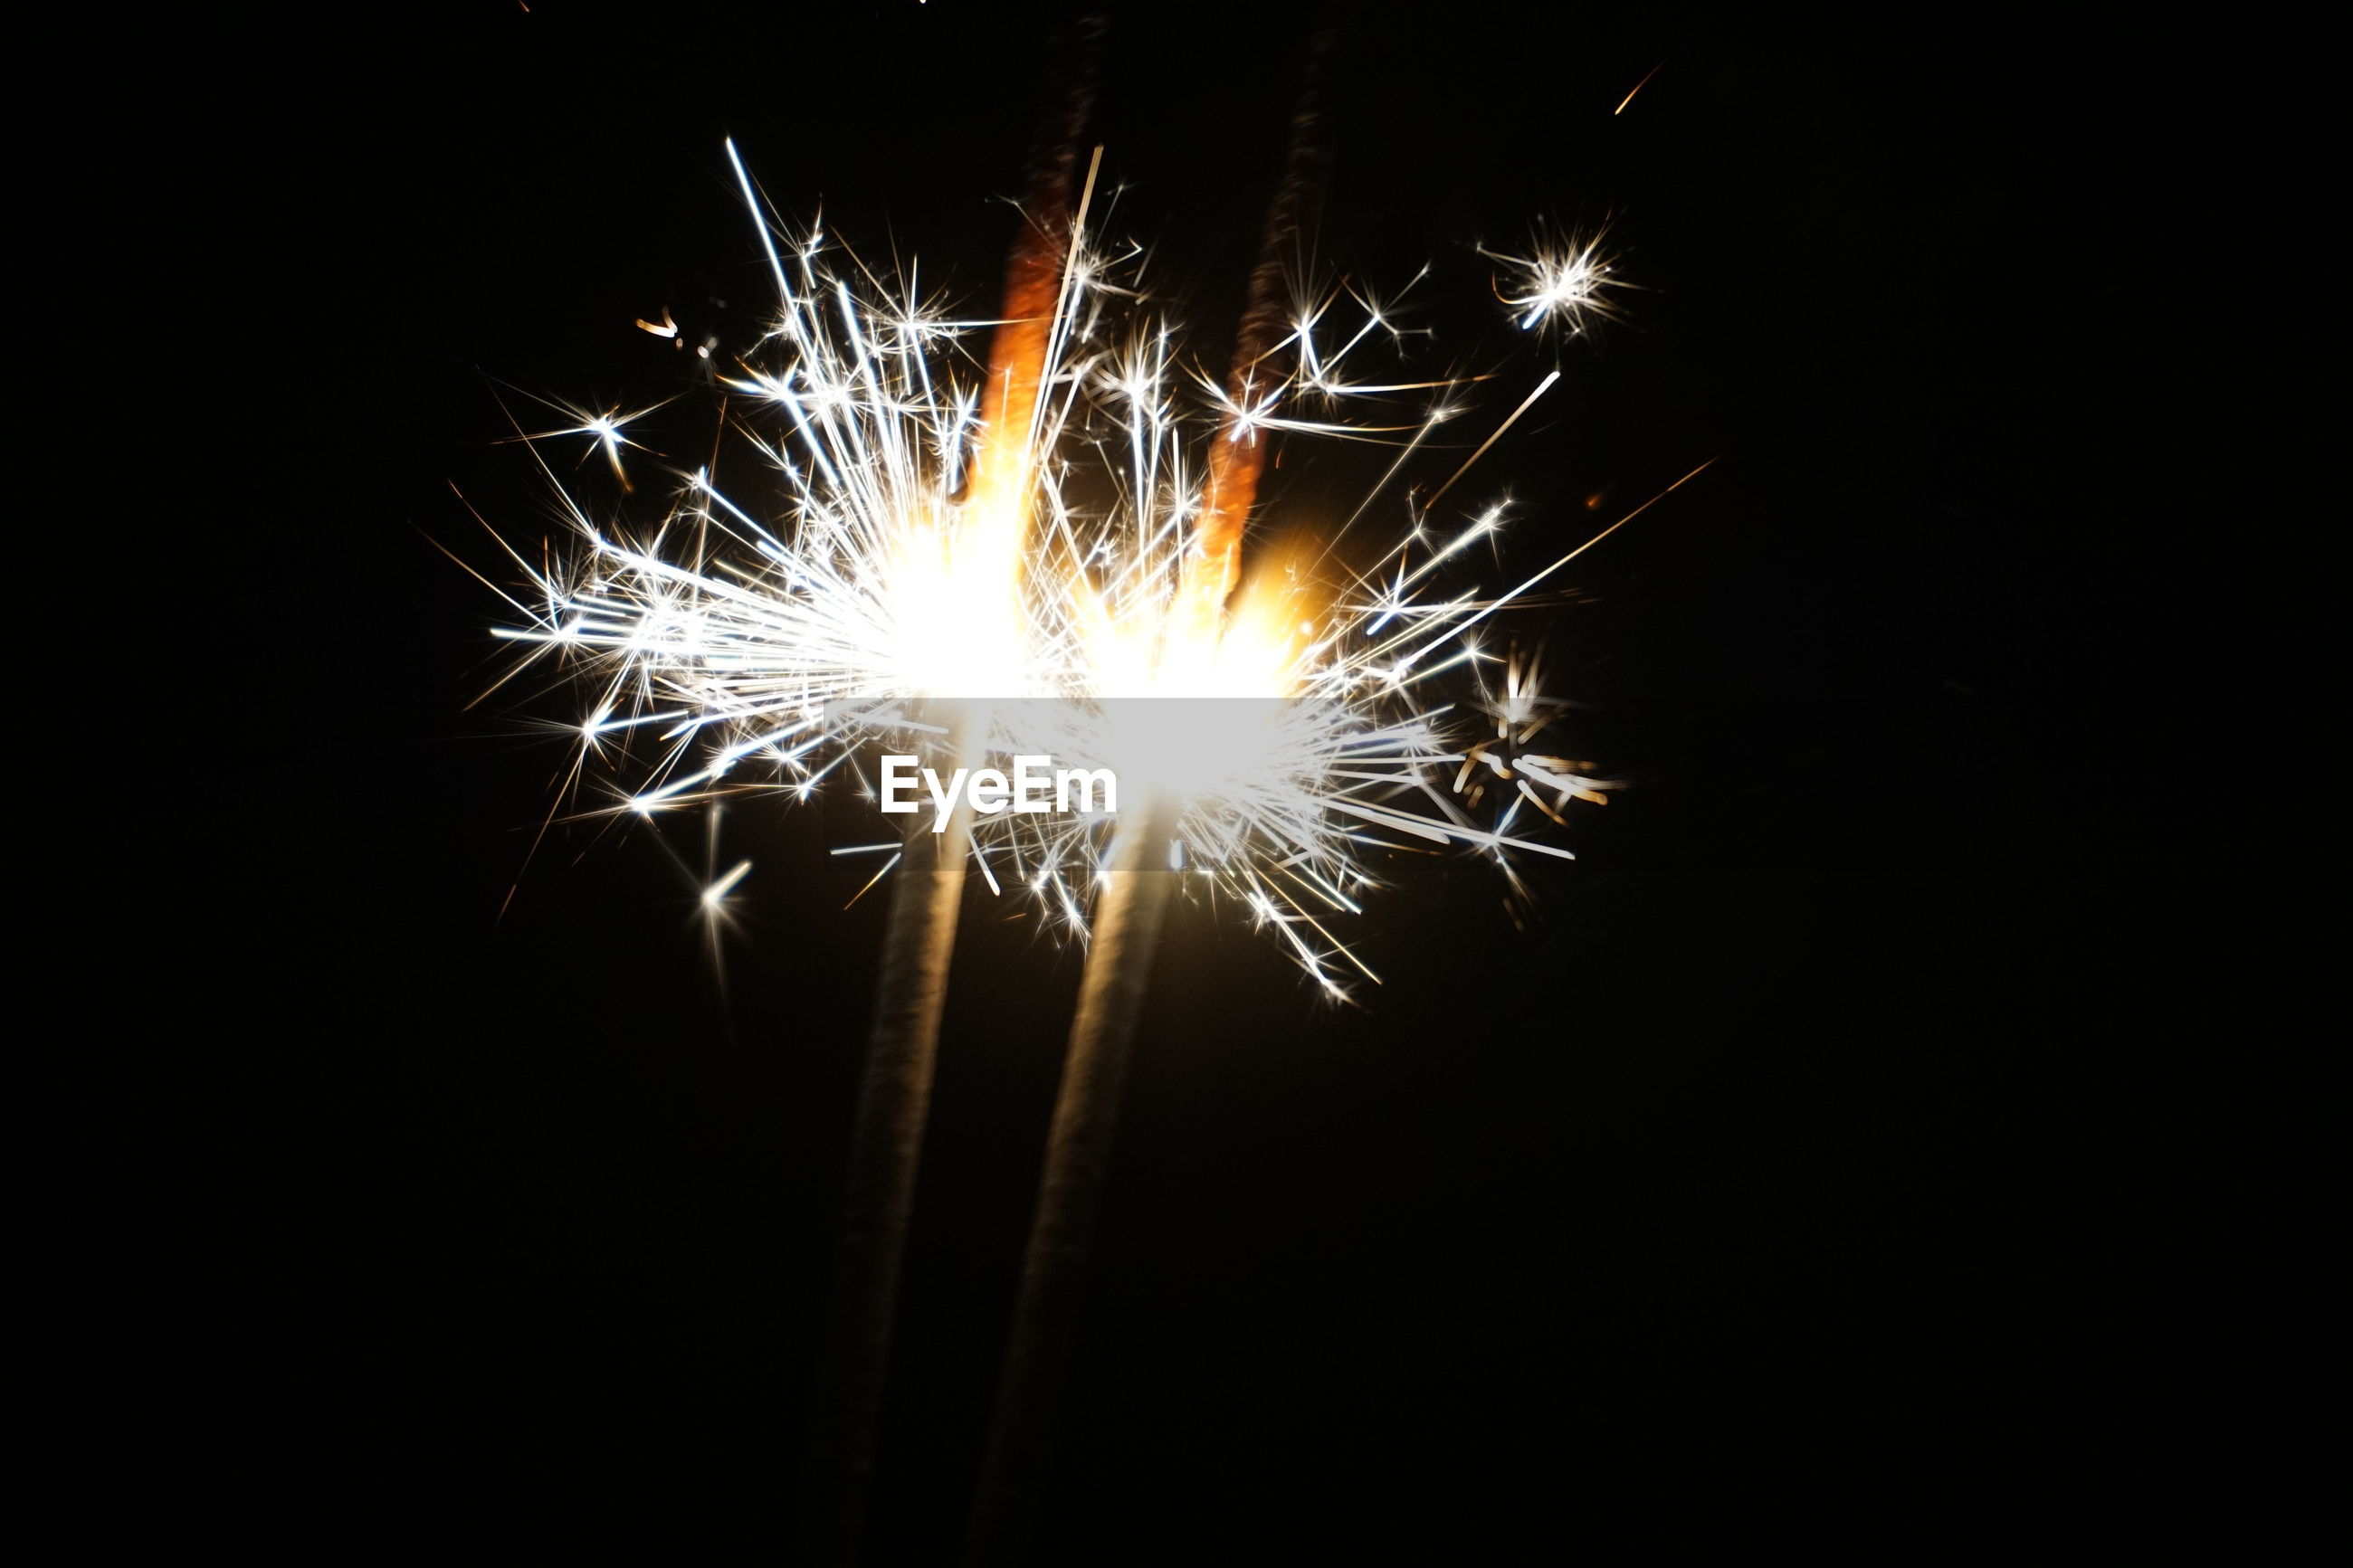 firework - man made object, firework display, night, sparks, exploding, long exposure, arts culture and entertainment, celebration, illuminated, sparkler, glowing, no people, motion, event, low angle view, blurred motion, firework, outdoors, black background, close-up, sky